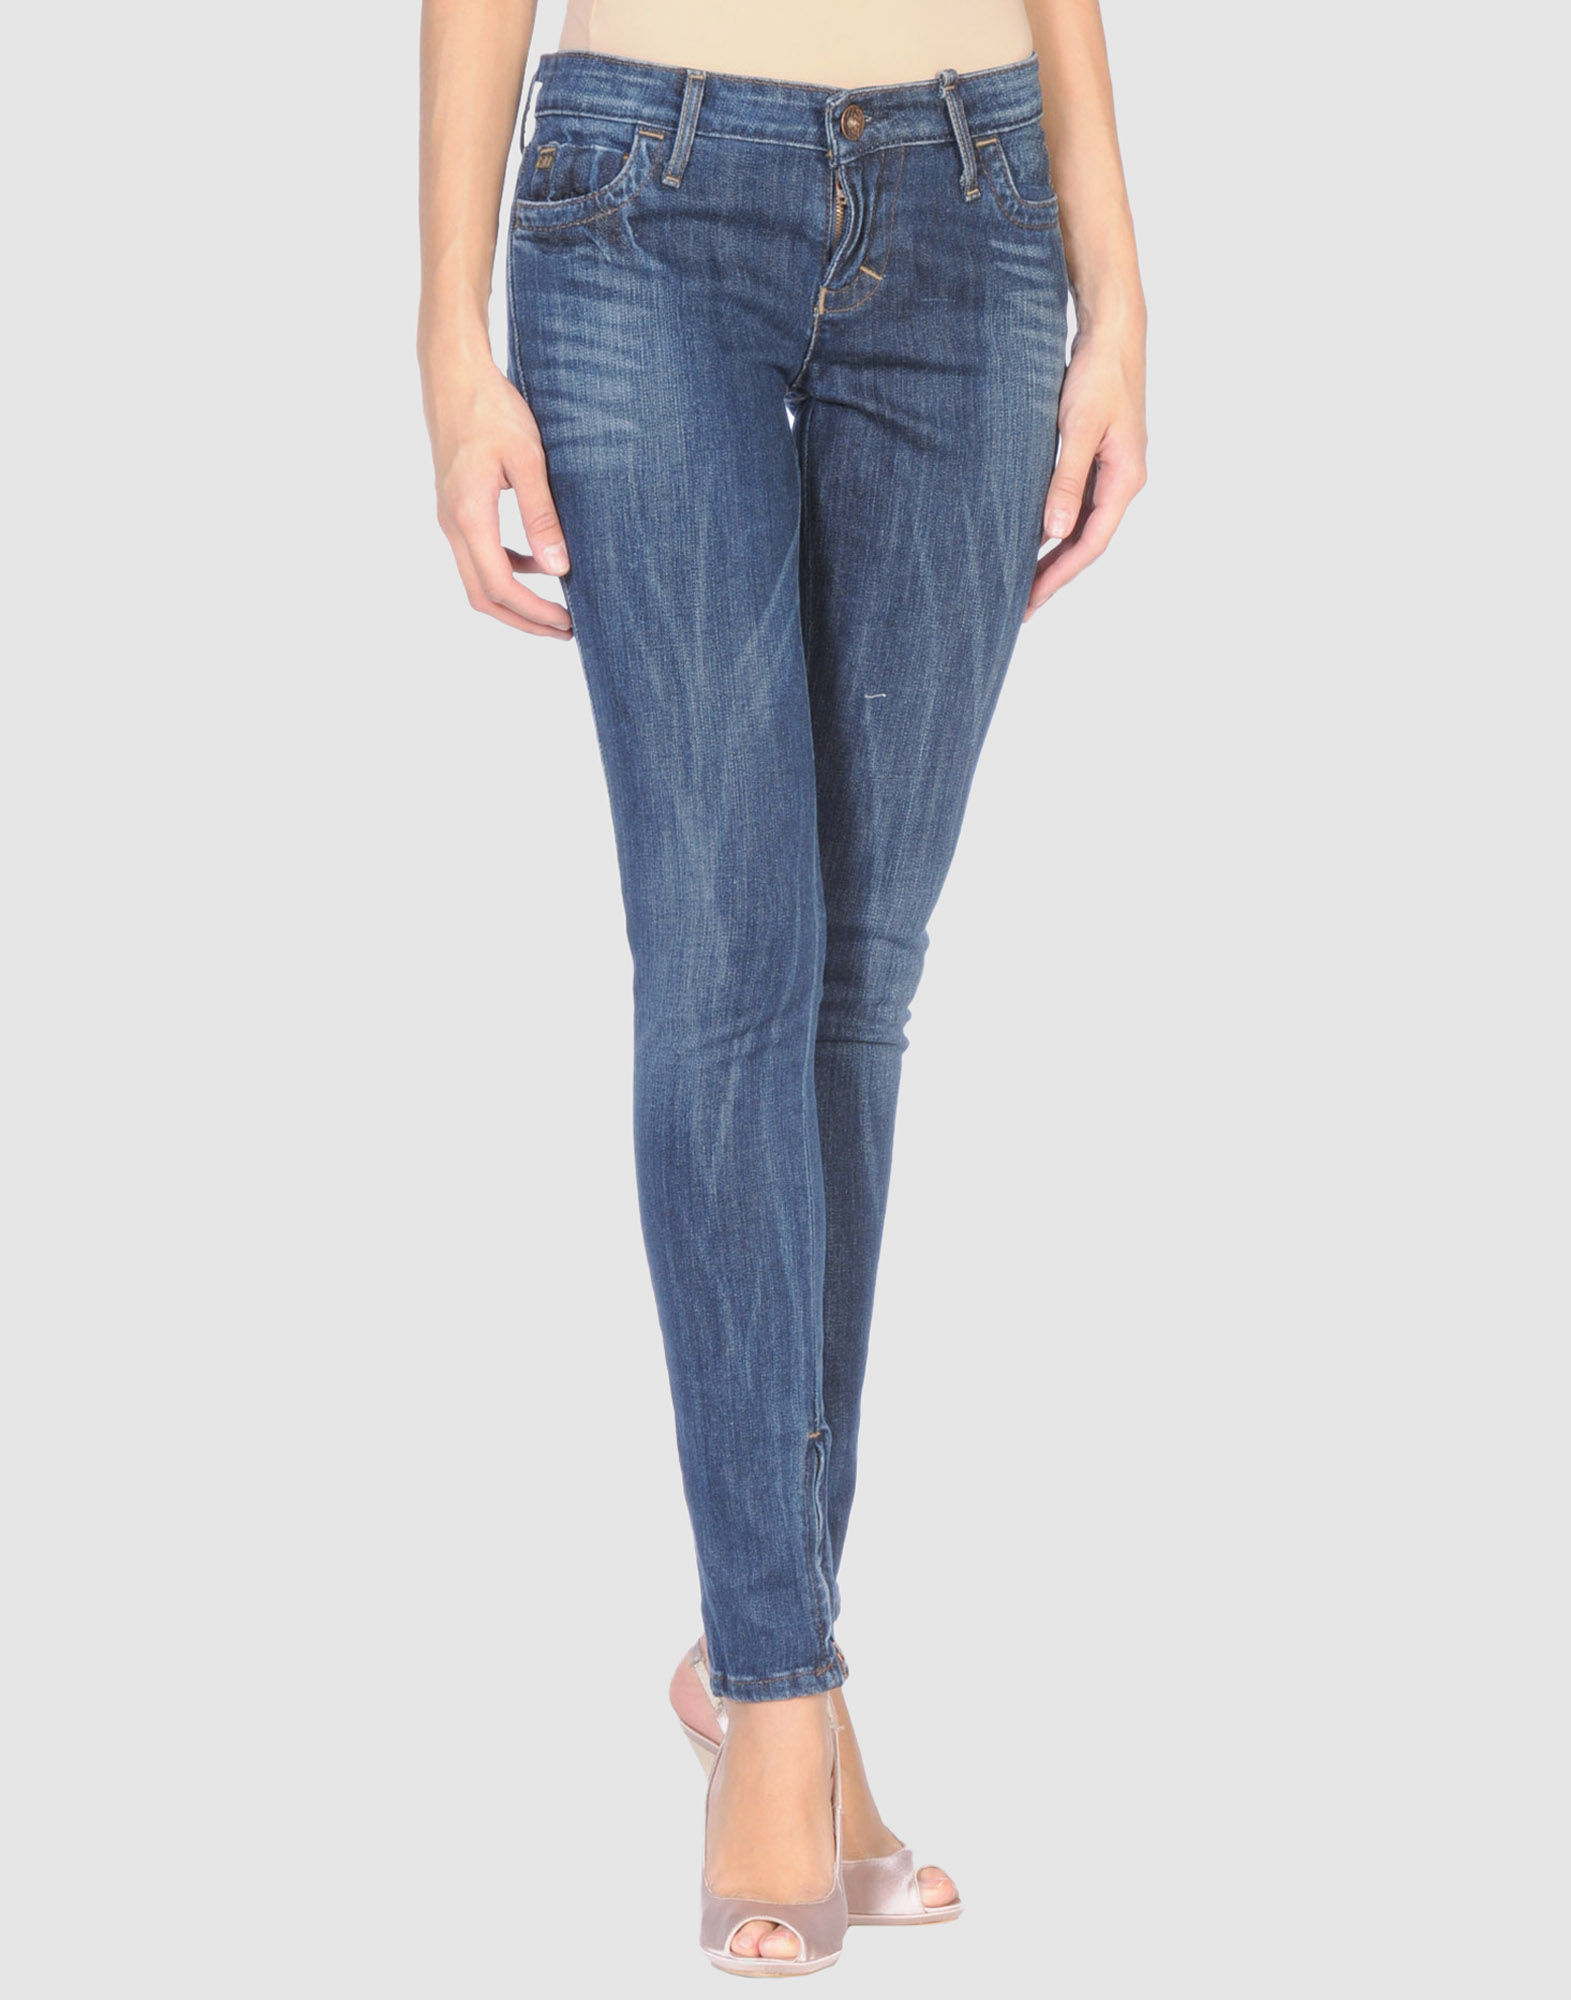 MISS SIXTY Jeans - Item 42183656